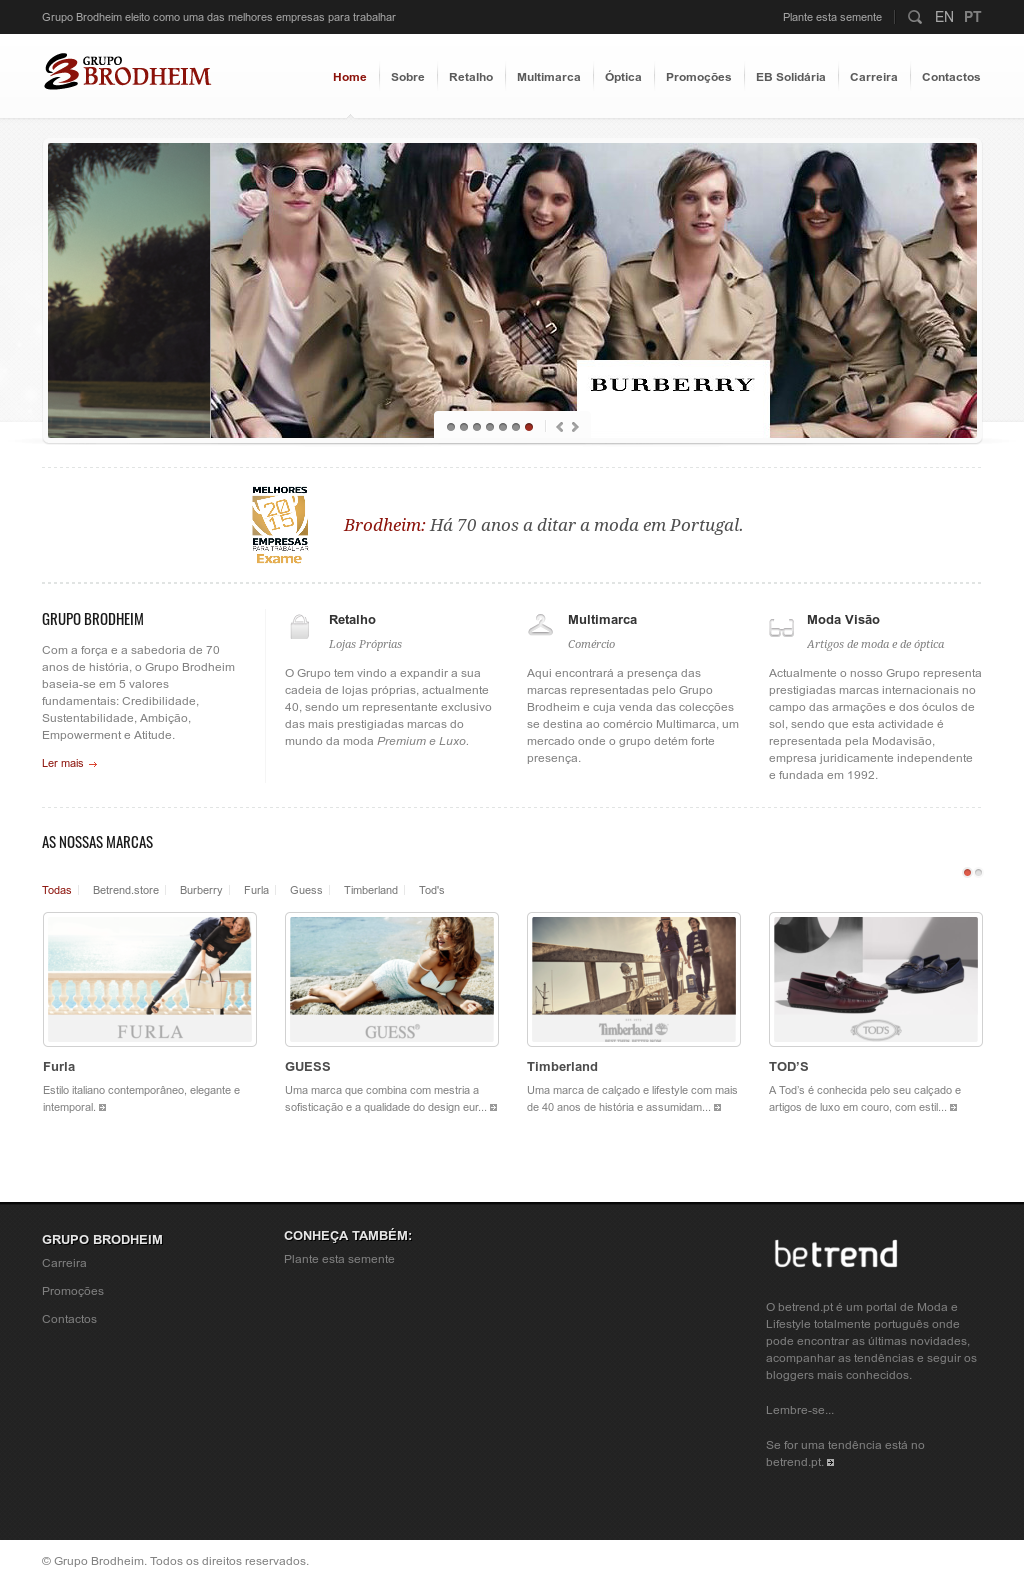 65d0d4373fdbd Betrend Competitors, Revenue and Employees - Owler Company Profile